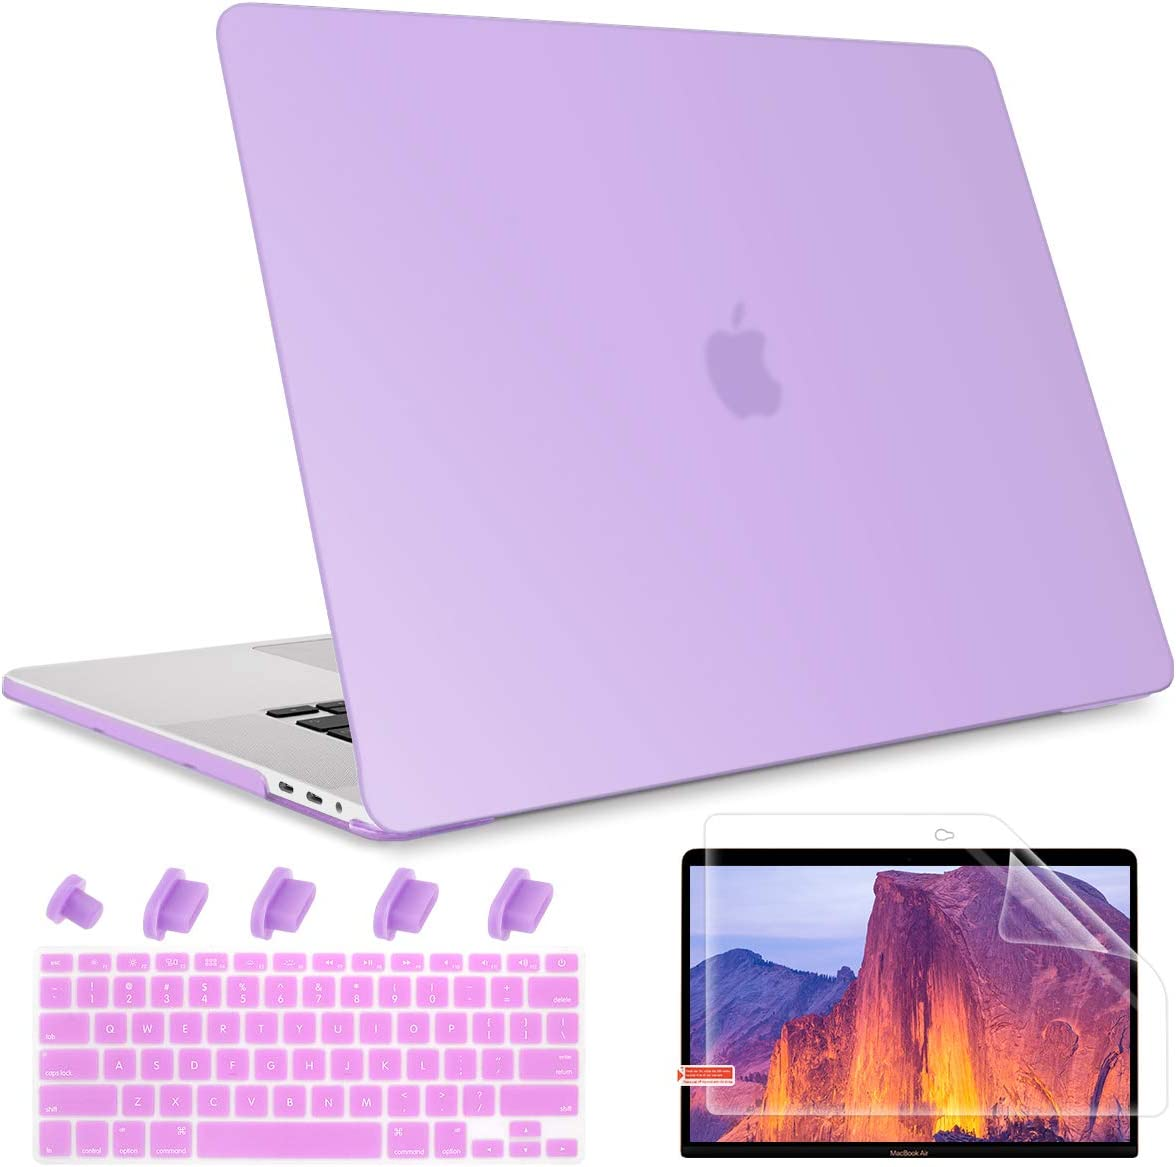 May Chen Older MacBook Air 13 inch Case (2010-2017 Release Older Version), Frosted Rubberized Matte See Through Plastic Hard Shell Case Cover for MacBook Air 13.3 Model A1369/A1466, Purple